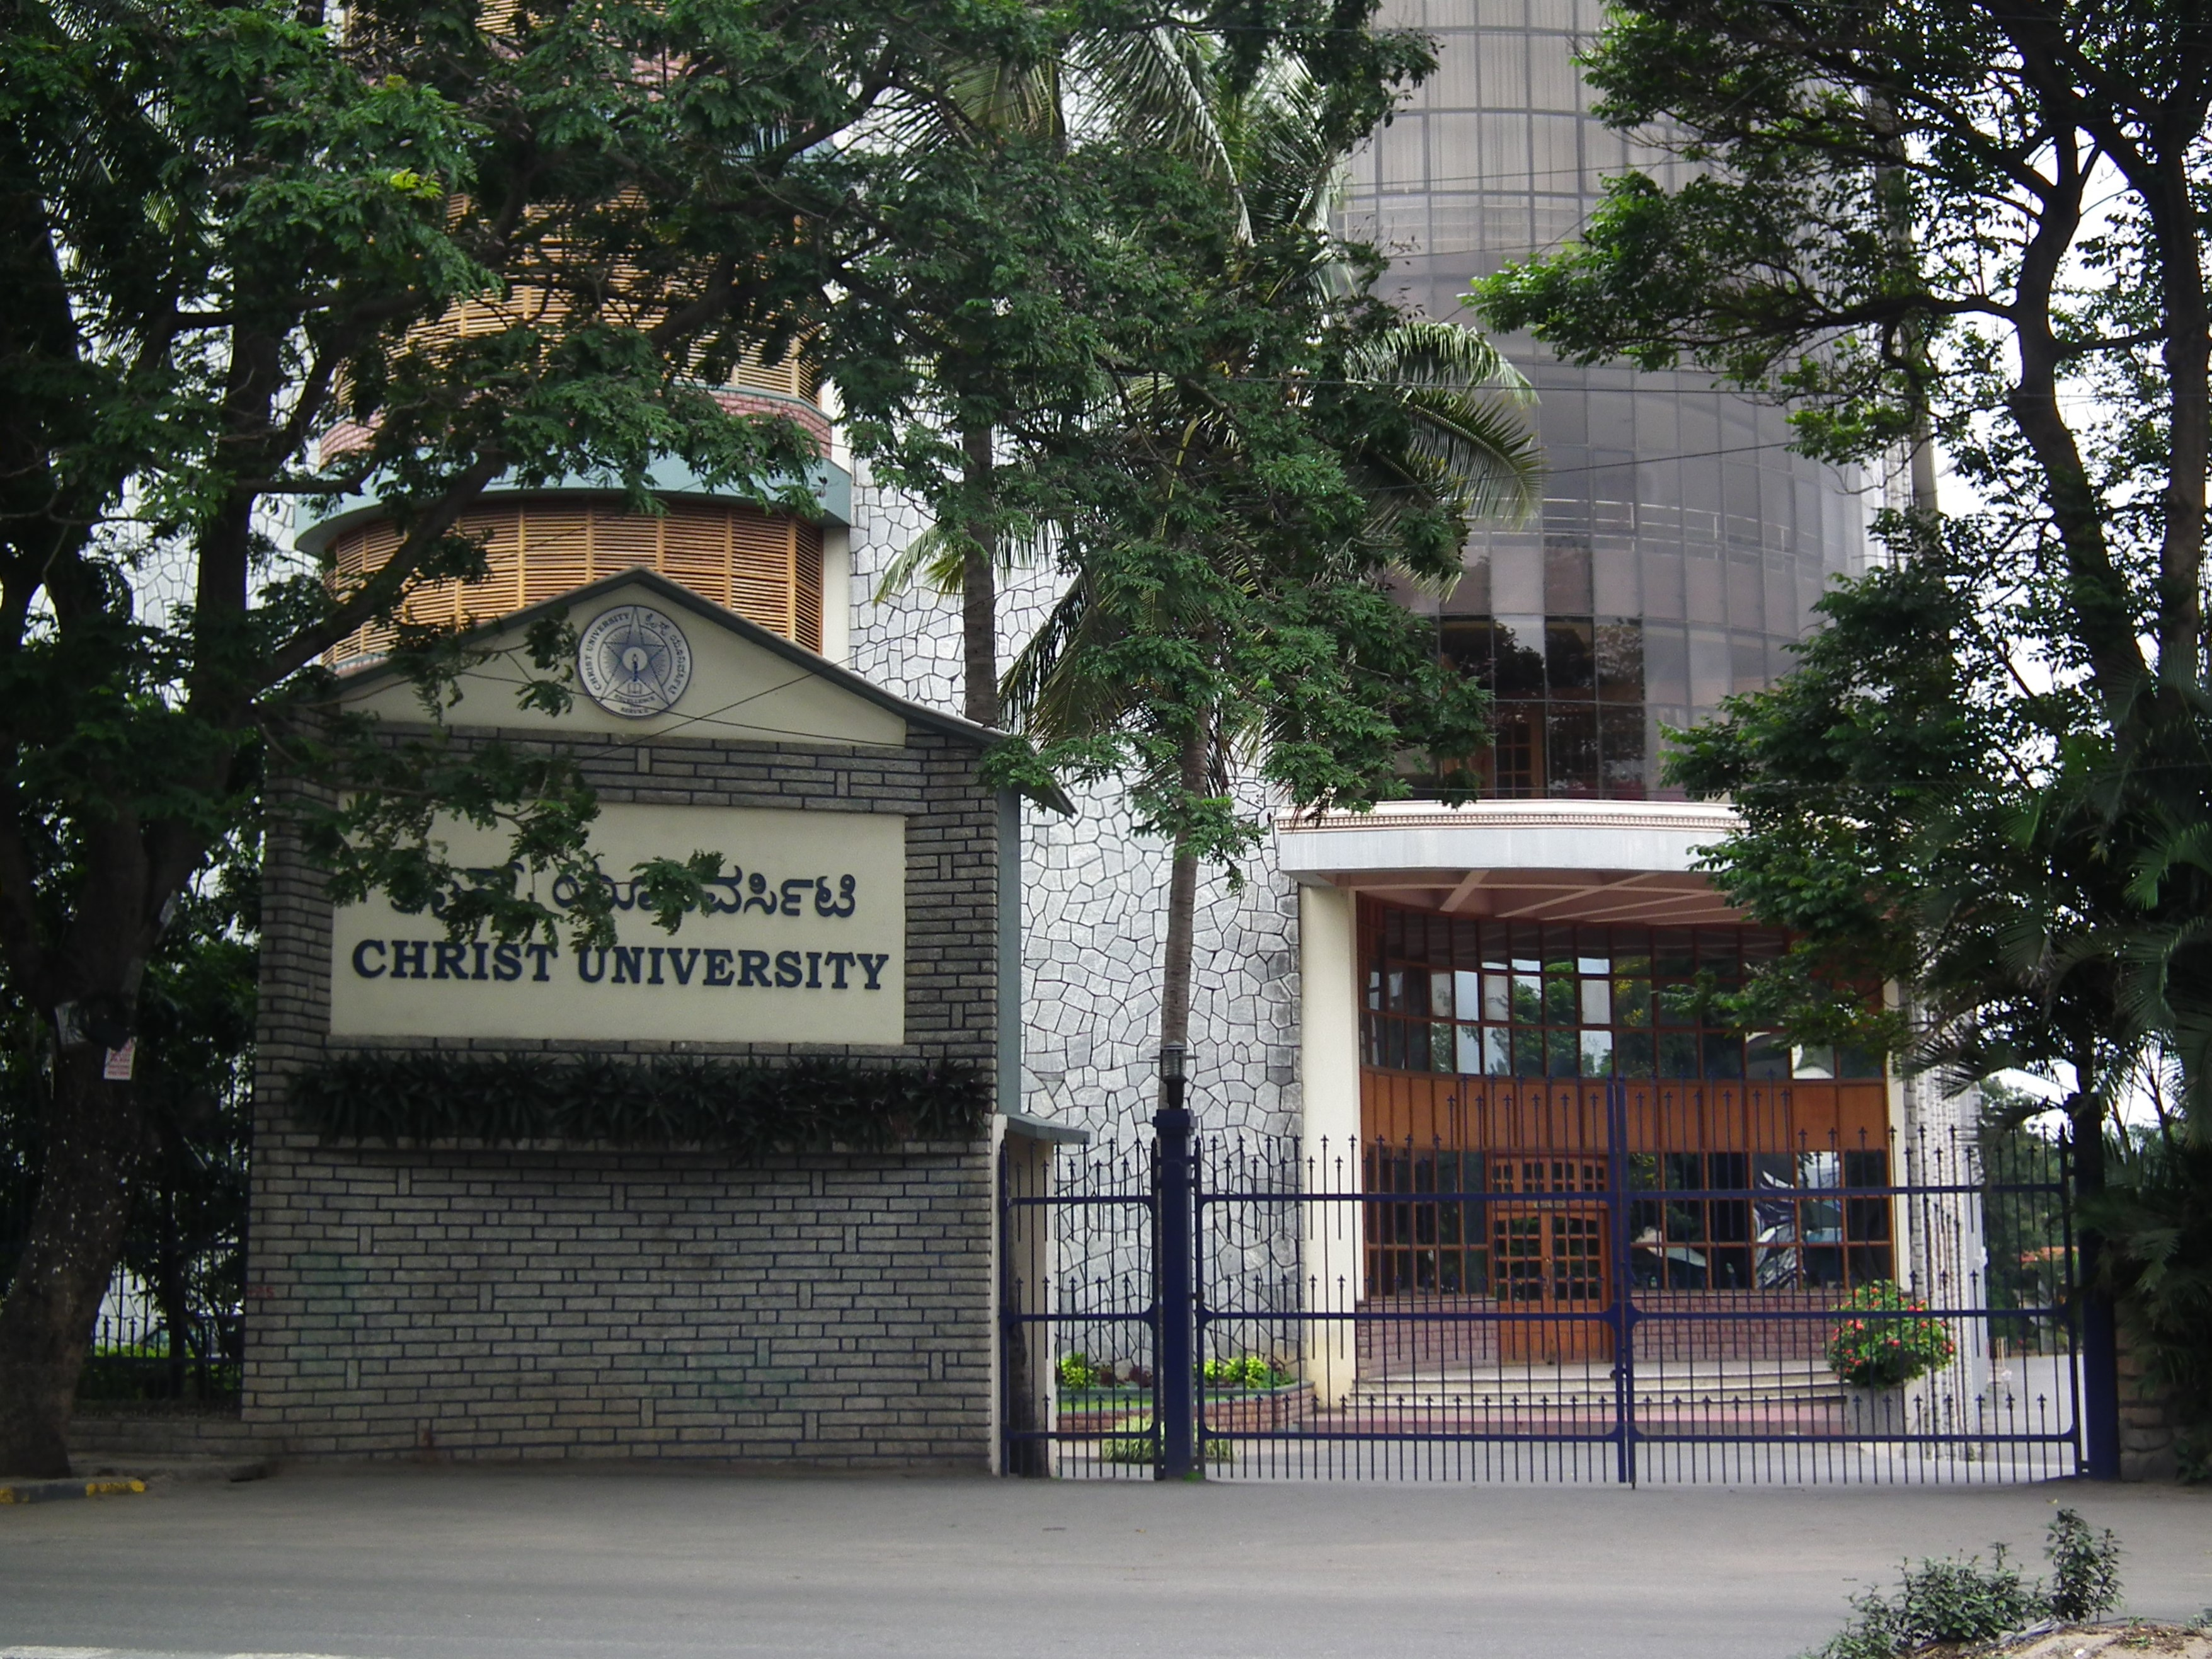 Christ_University_Hosur_road_Bangalore_4819